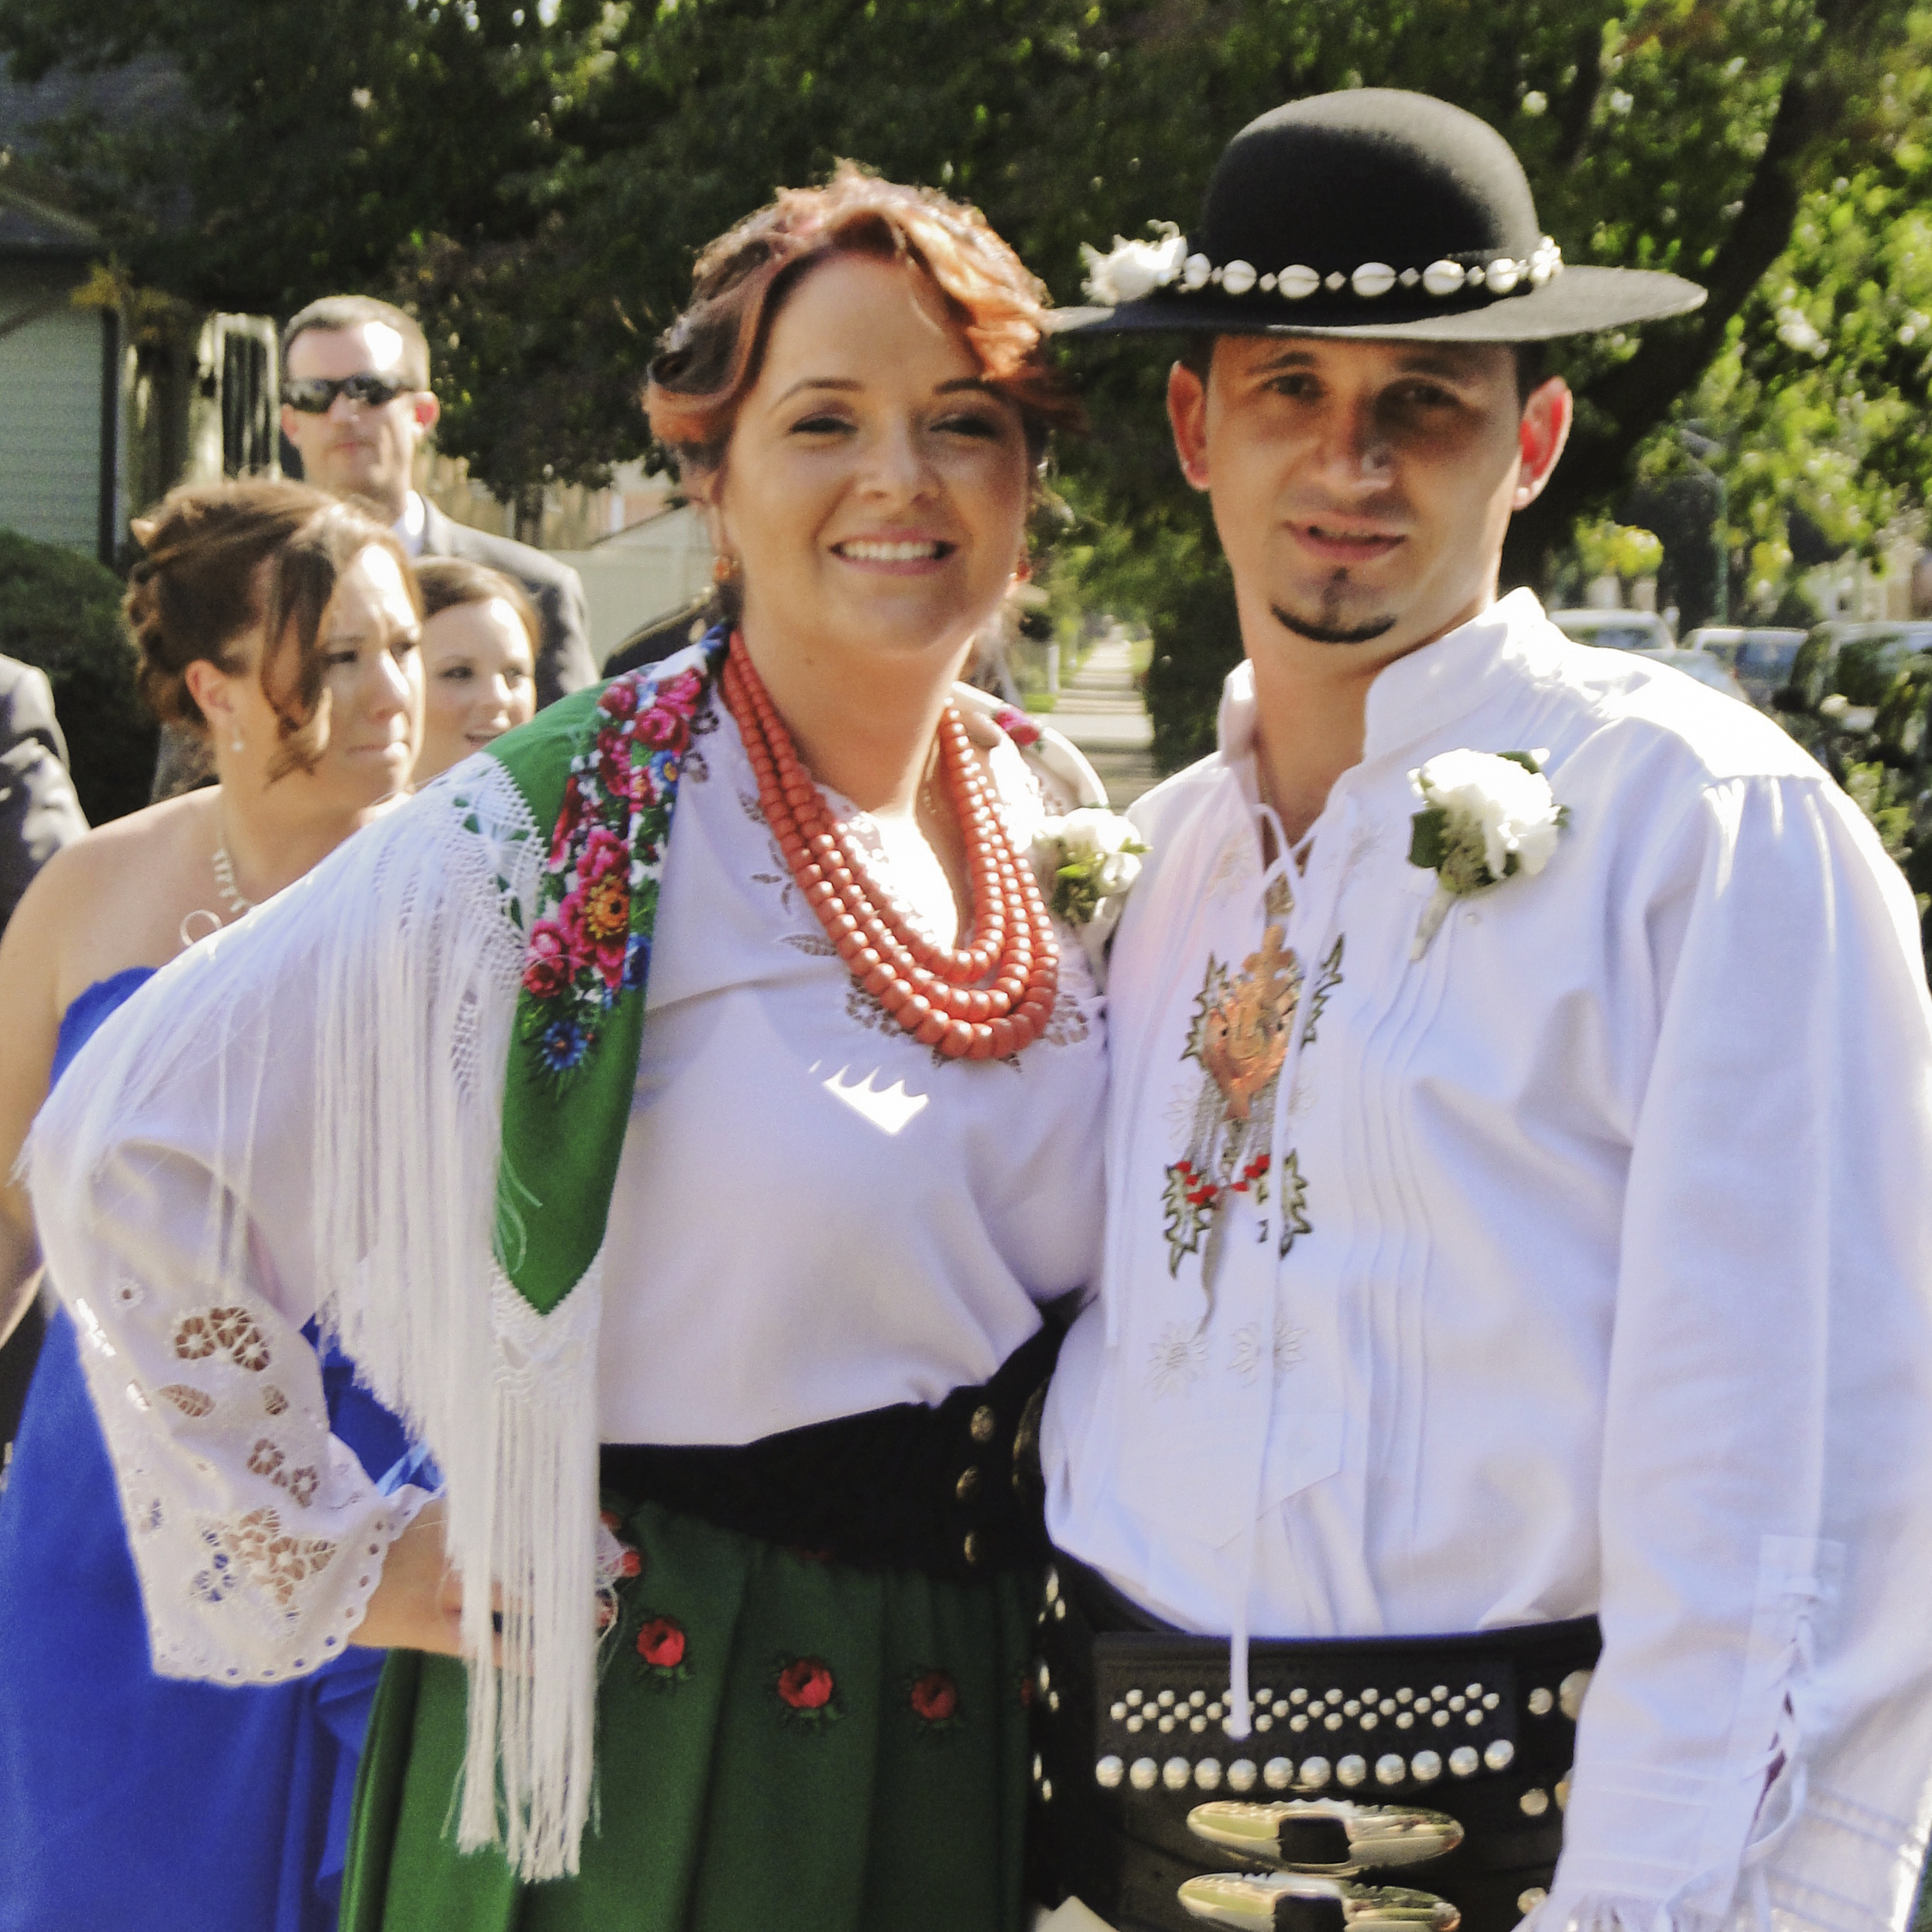 Guests pose in traditional Polish Highlander garb before heading to the church ceremony.